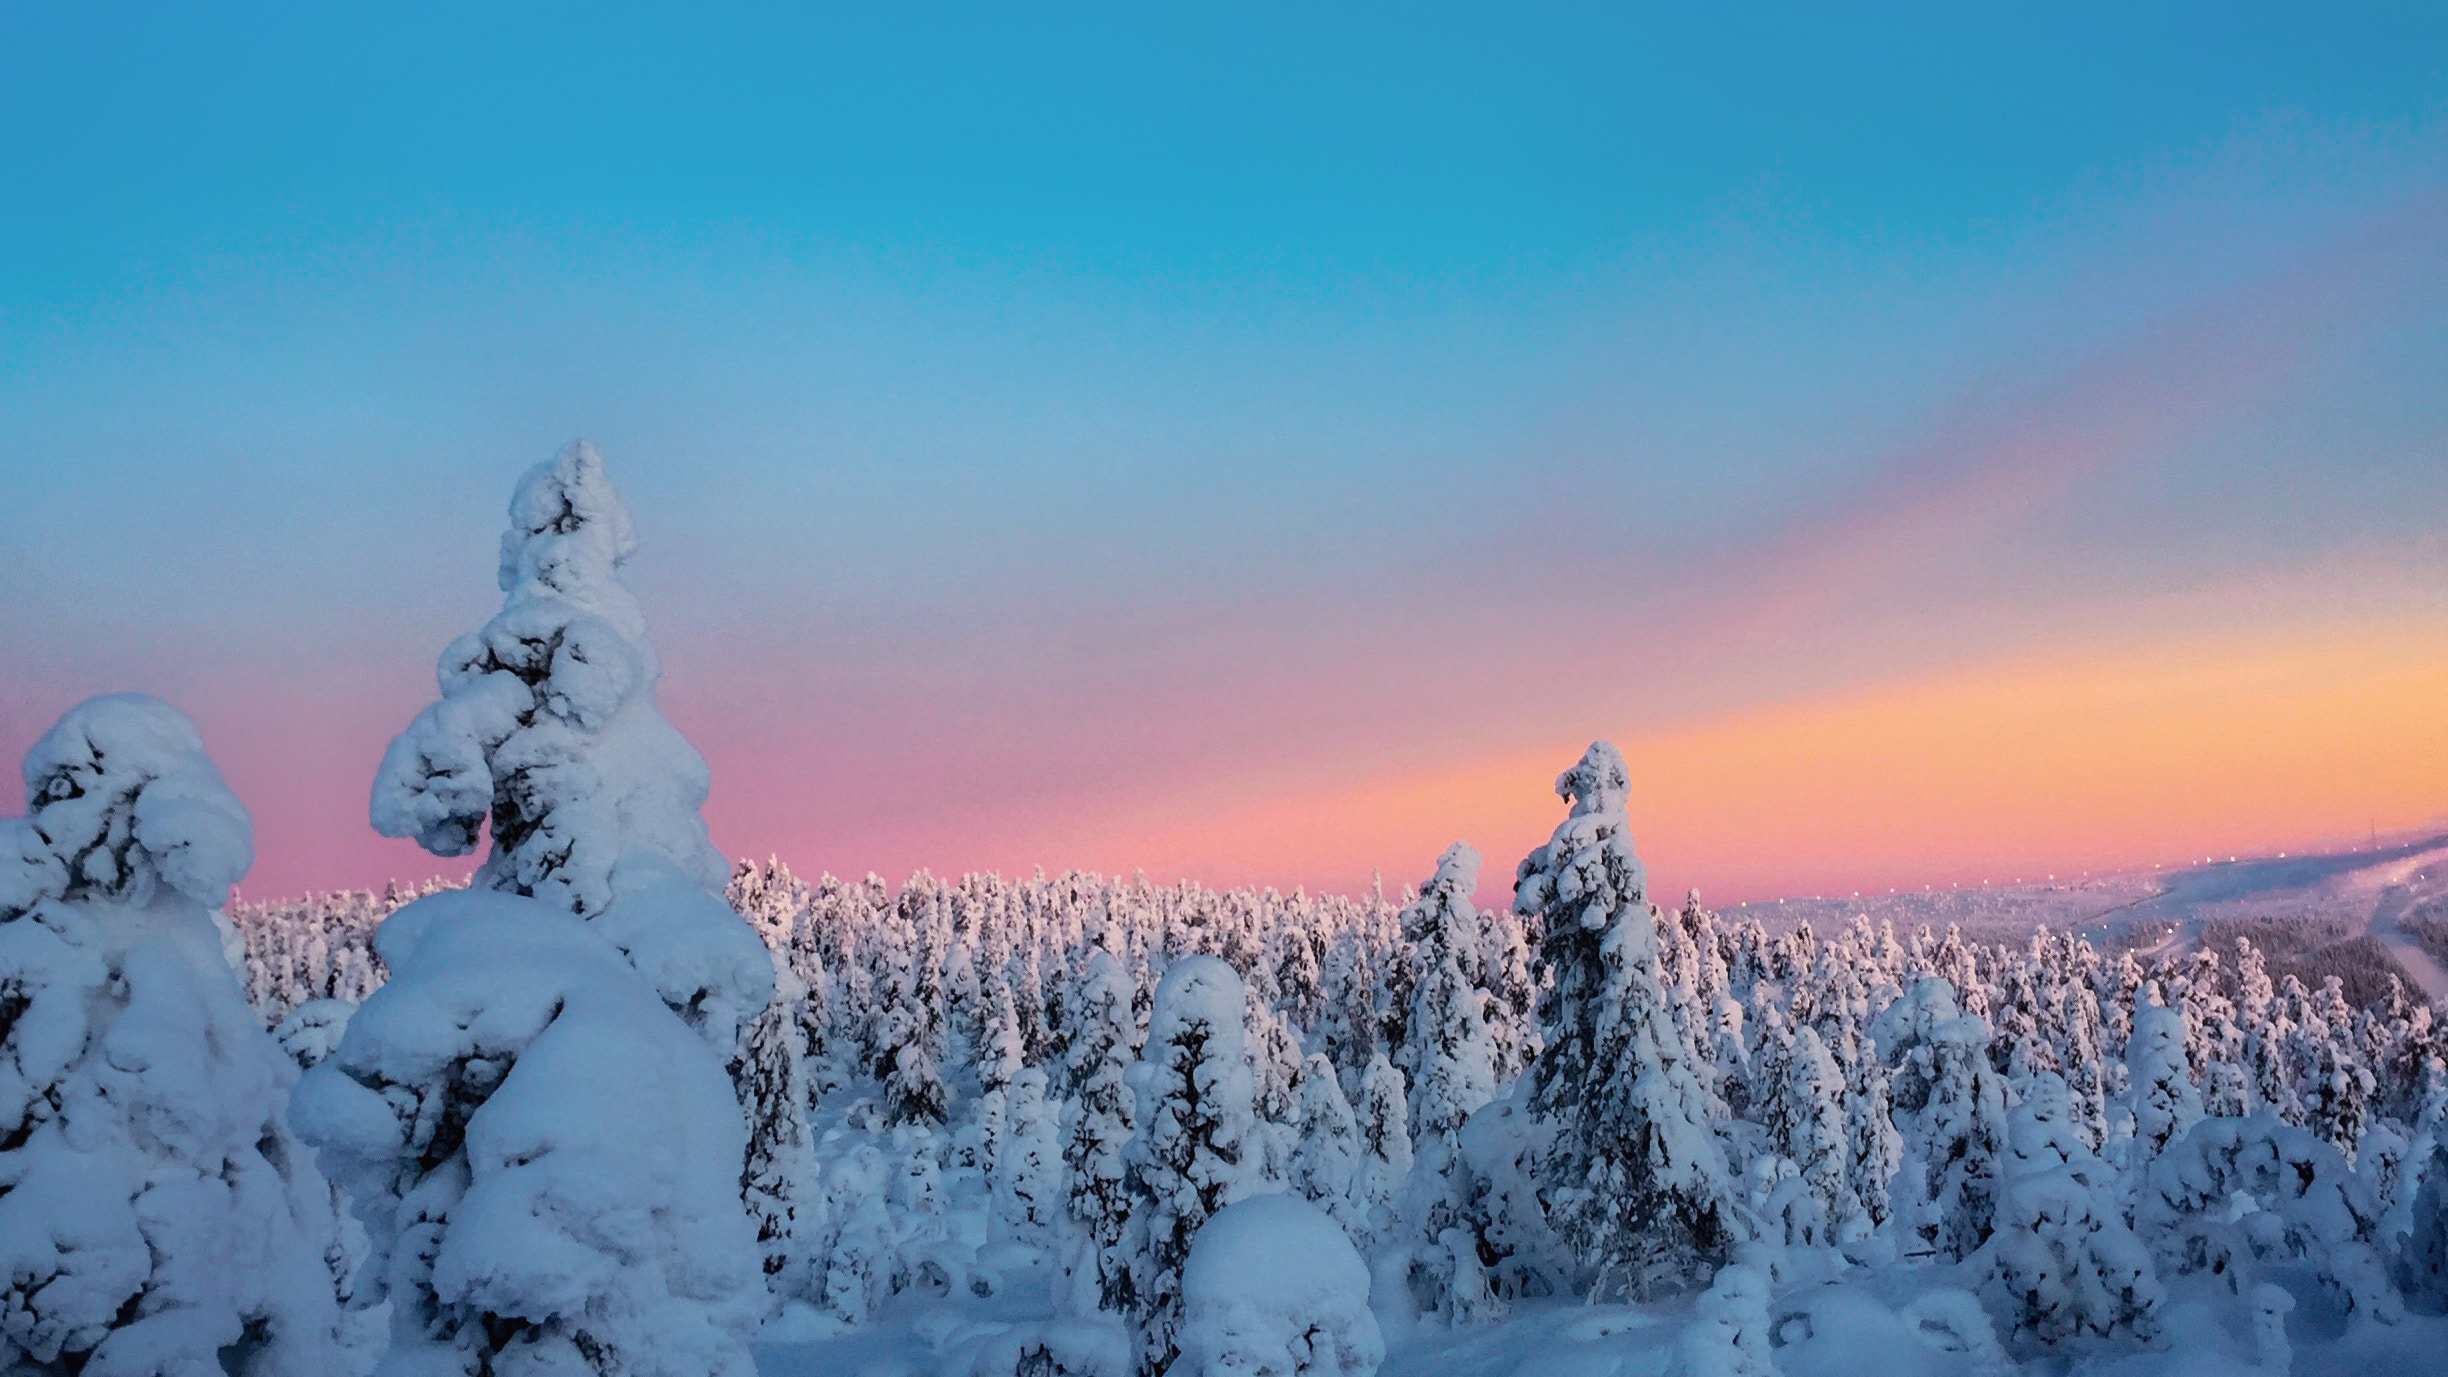 trees covered with snow view 1574939432 - Trees Covered With Snow View -